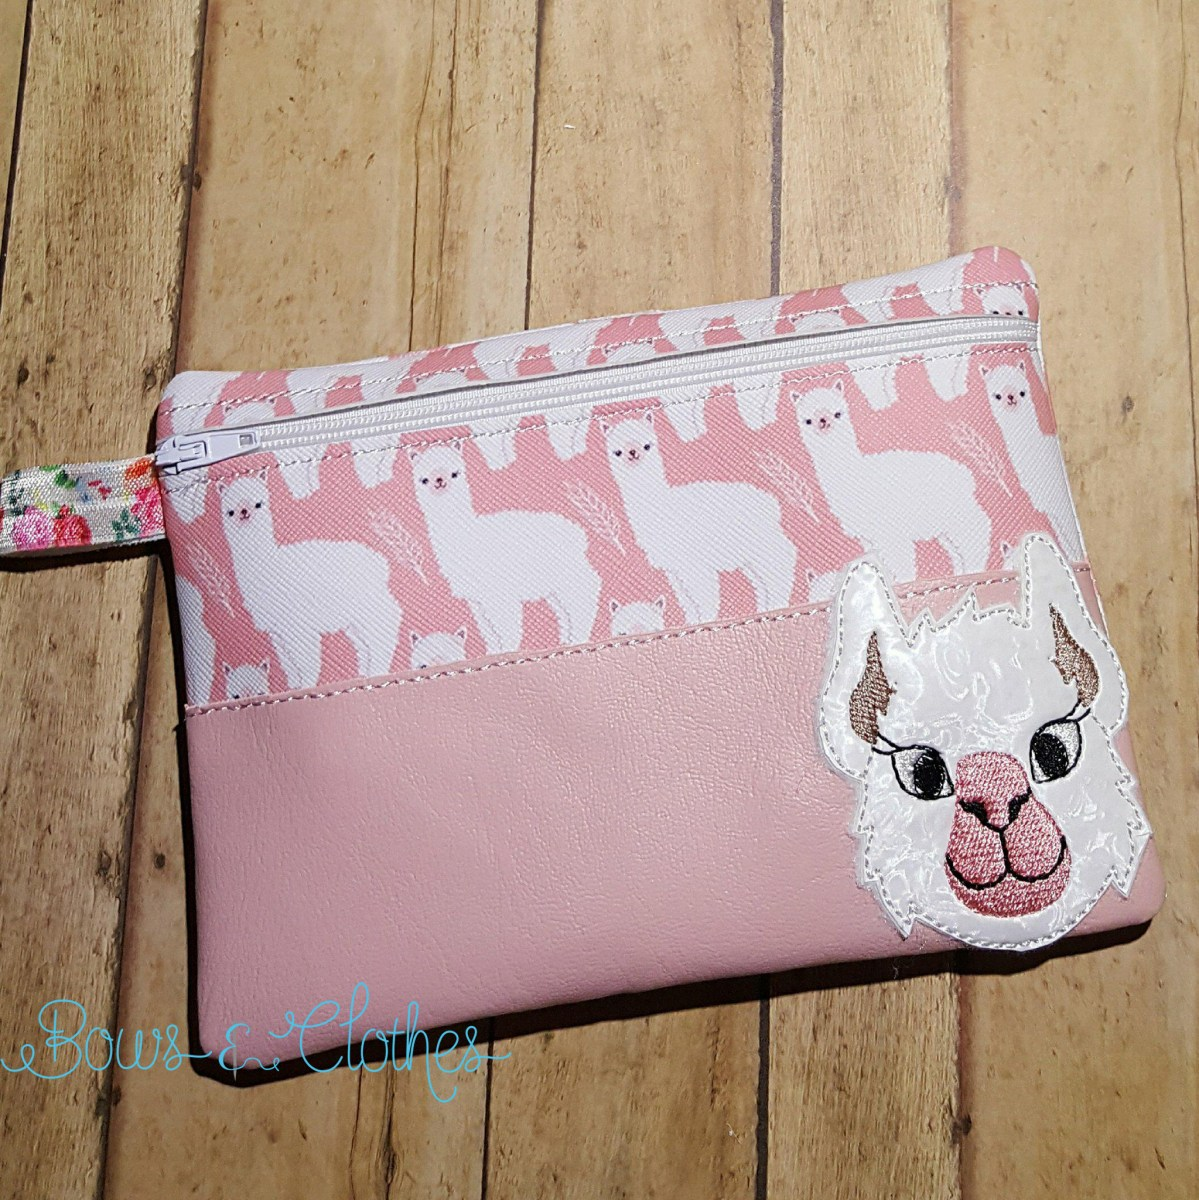 Llama/Alpaca Top Half Vinyl Zipper Purse